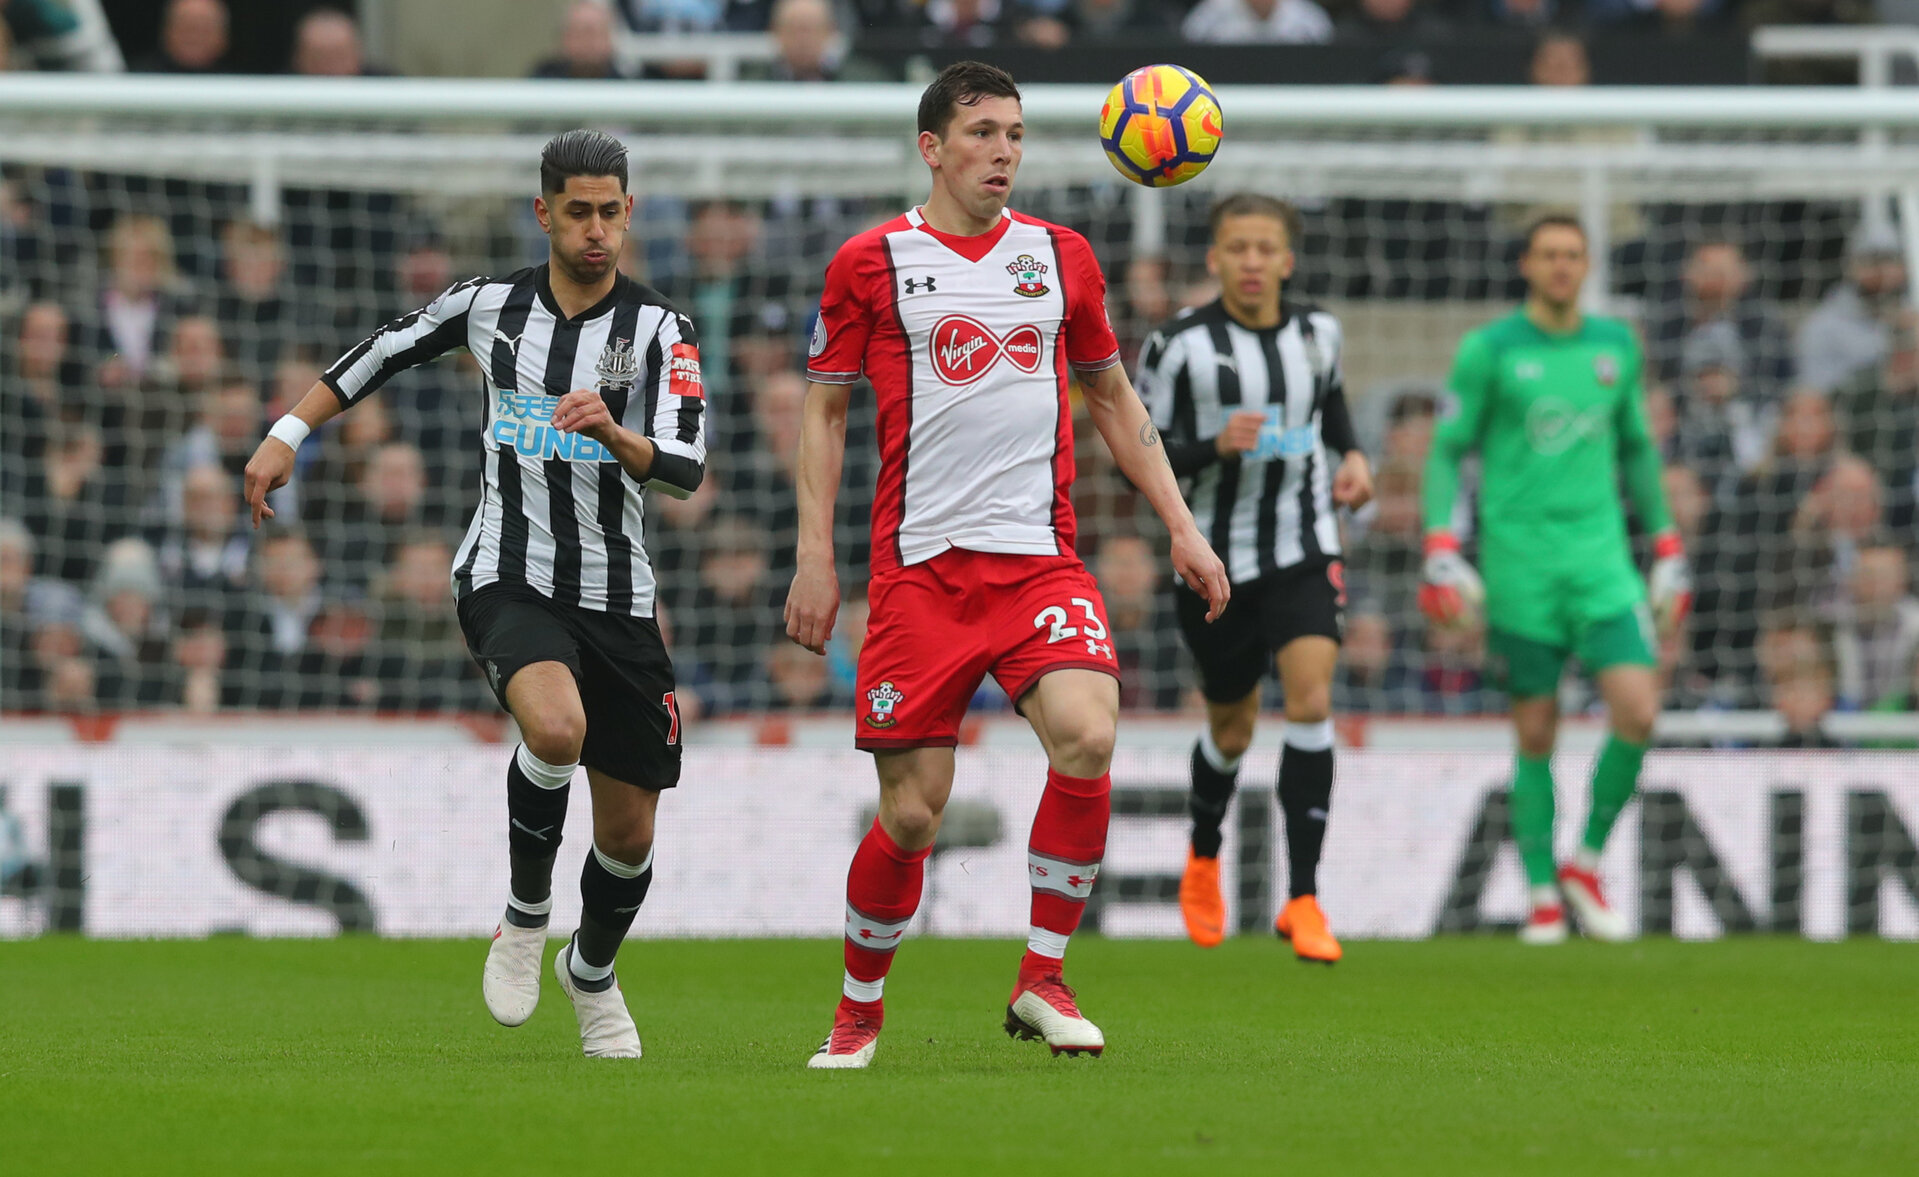 NEWCASTLE UPON TYNE, ENGLAND - MARCH 10: Pierre-Emile Hojbjerg of Southampton FC during the Premier League match between Newcastle United and Southampton at St. James Park on March 10, 2018 in Newcastle upon Tyne, England. (Photo by Matt Watson/Southampton FC via Getty Images)